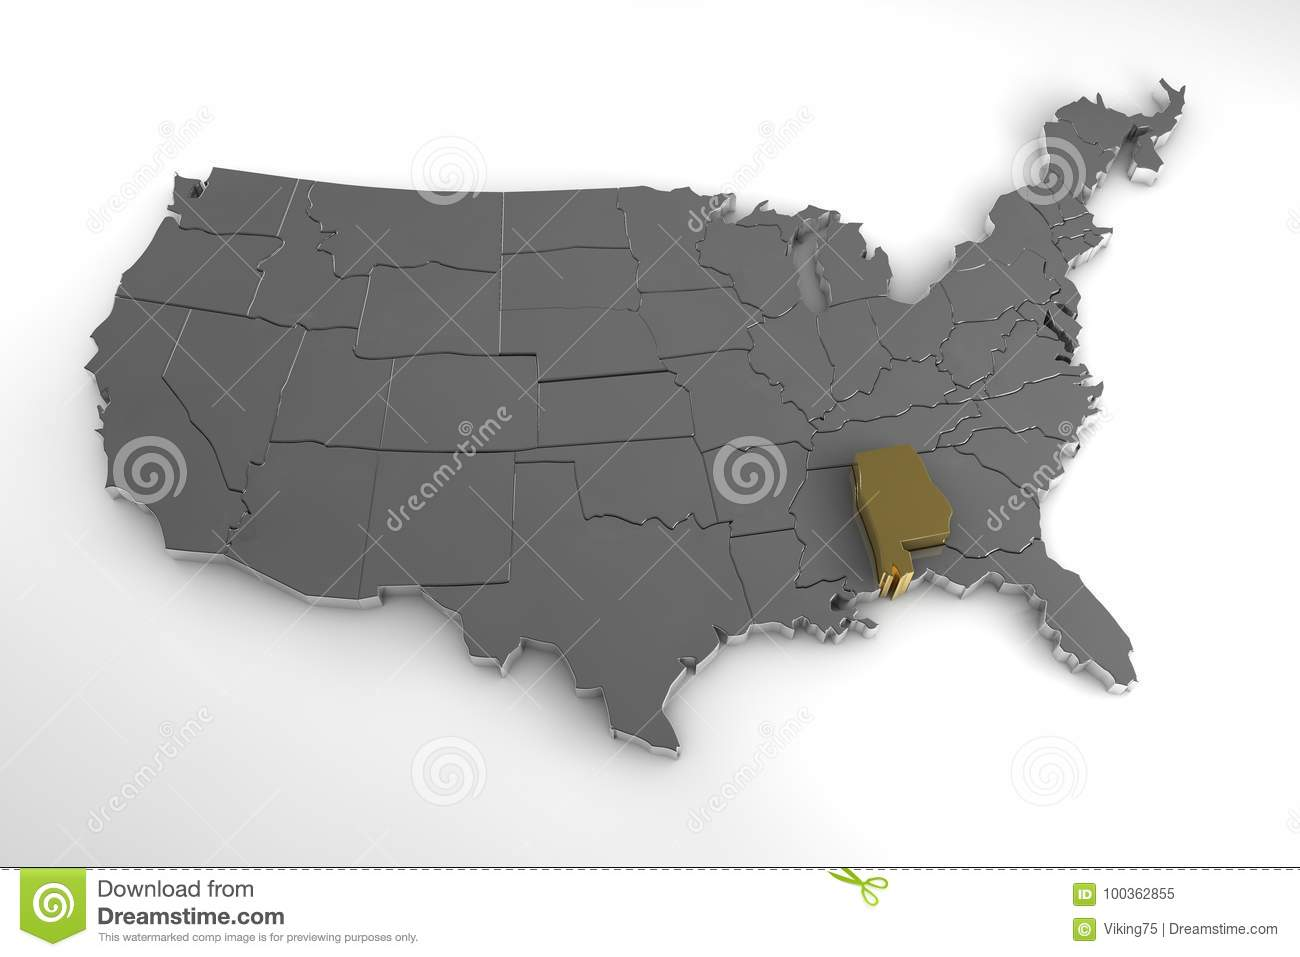 Alabama United States Map.United States Of America 3d Metallic Map With Alabama State